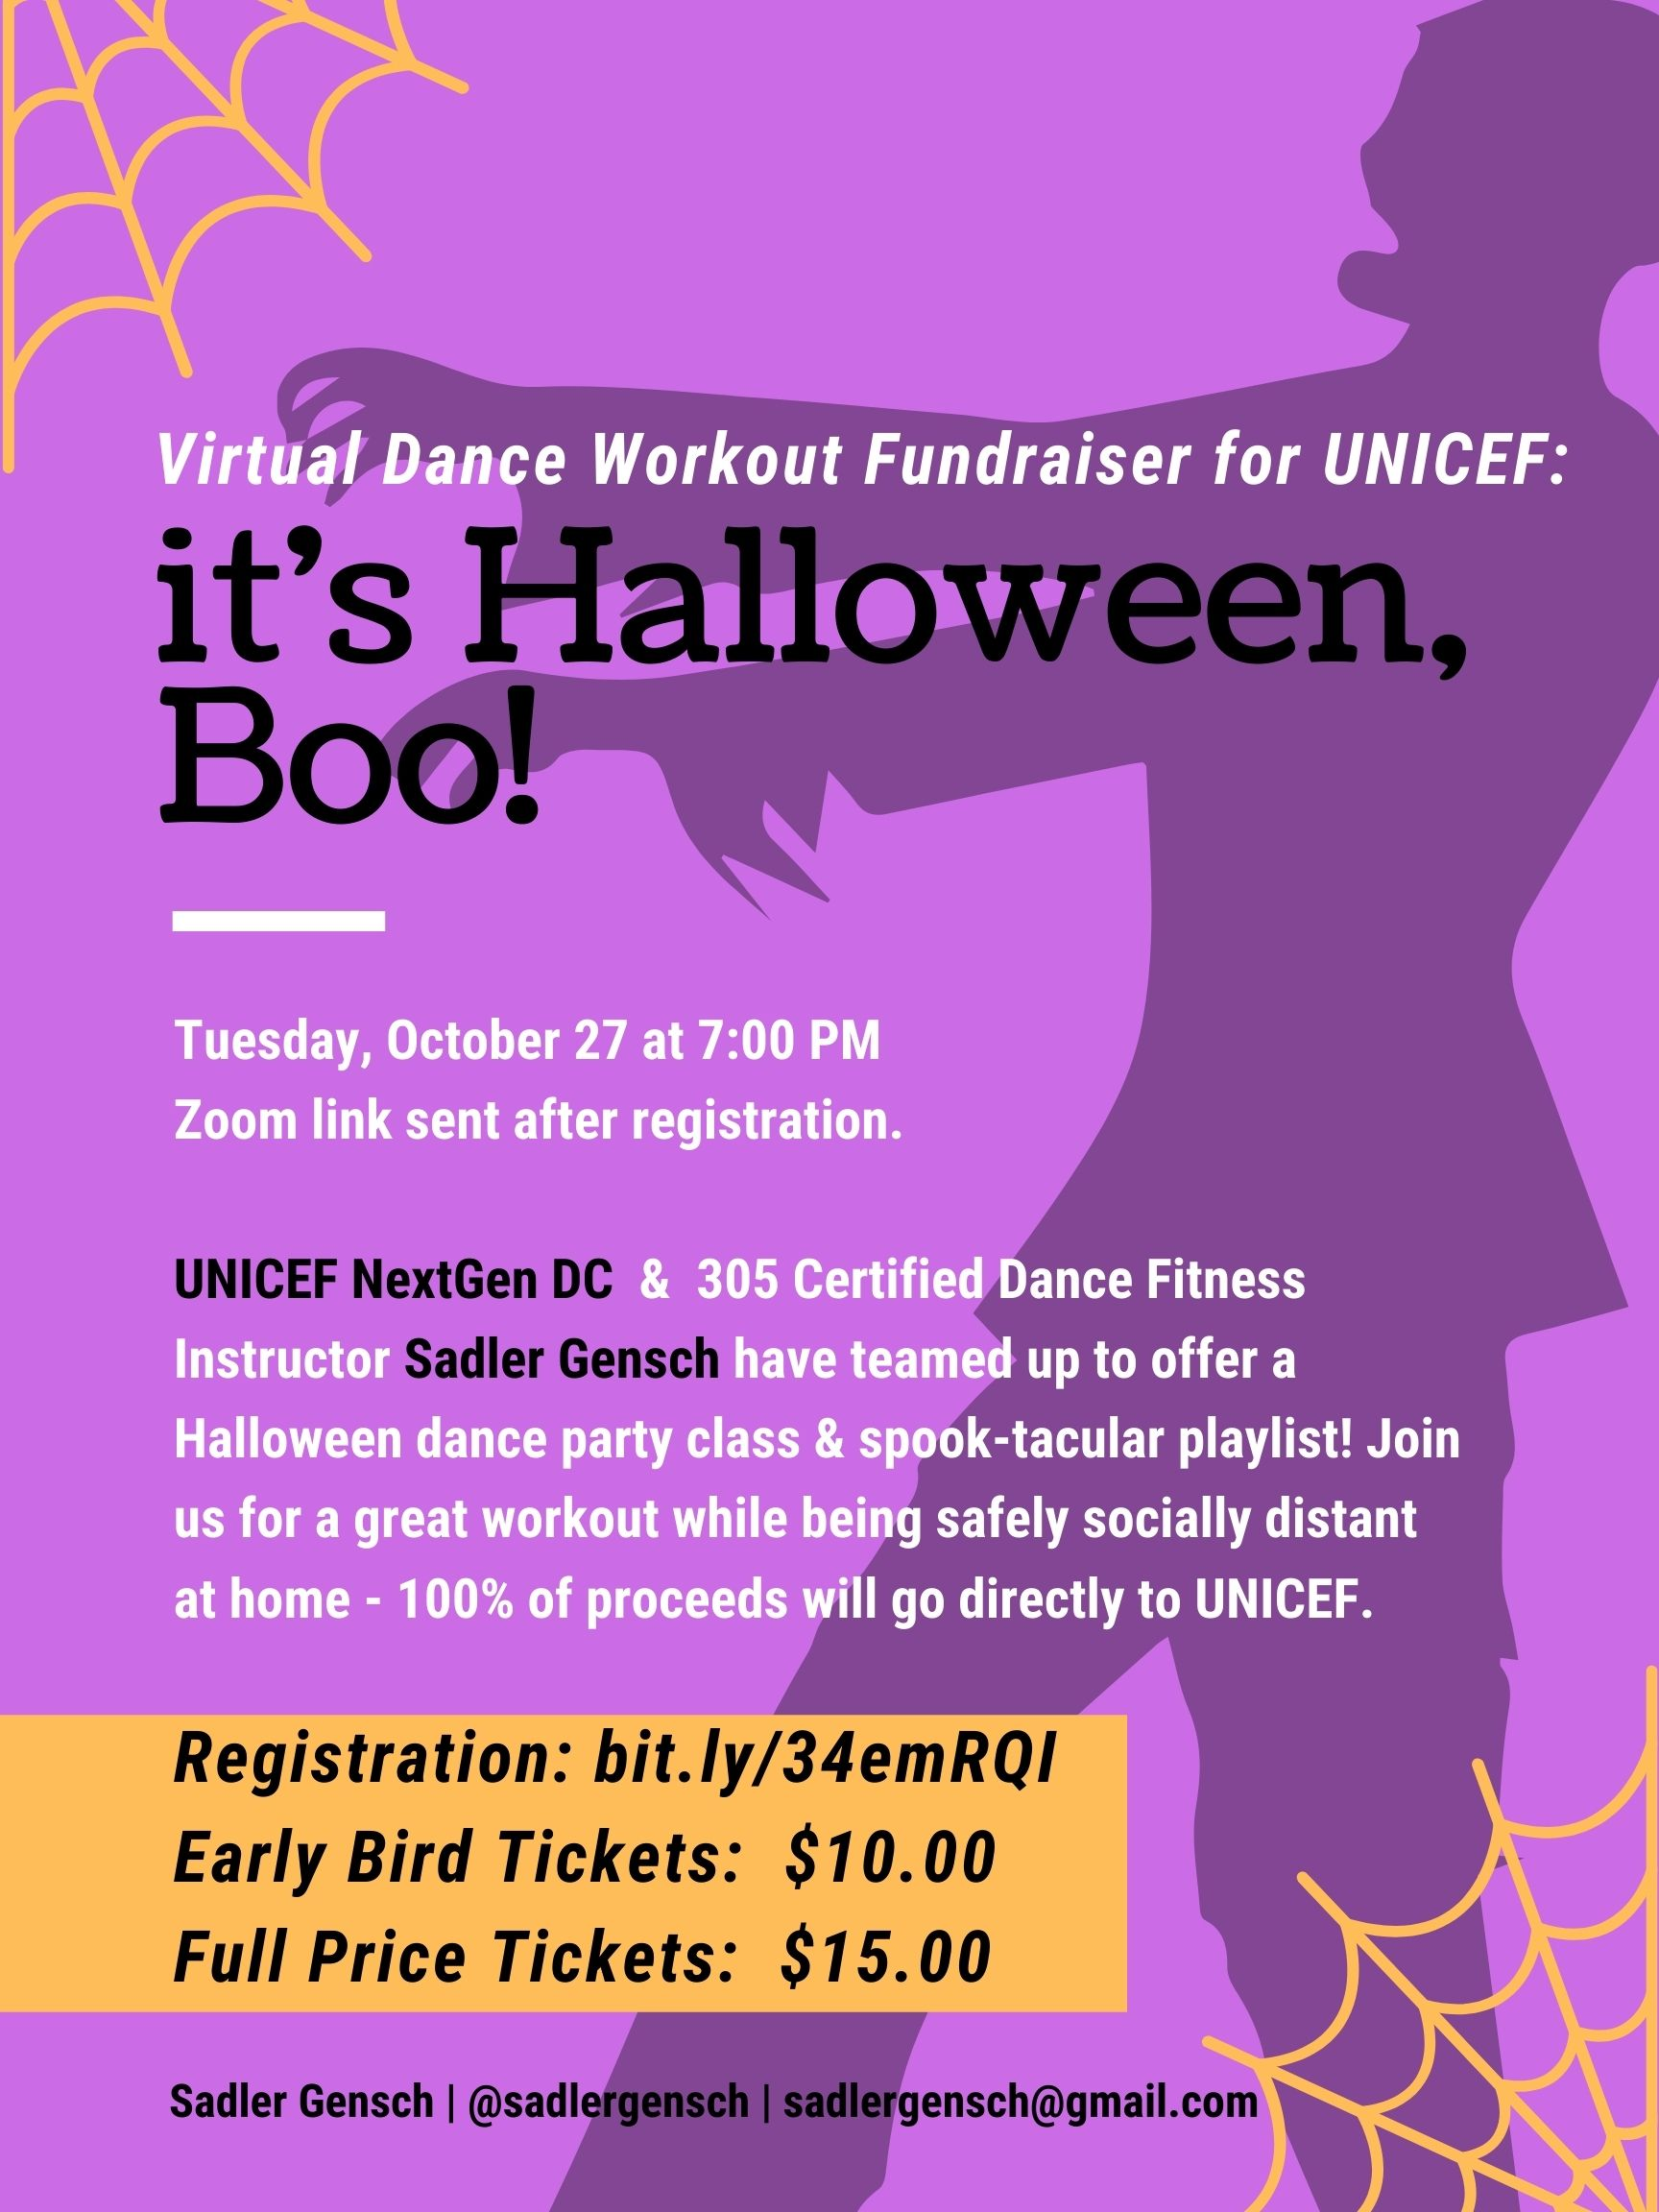 It's Halloween, Boo: UNICEF's Virtual Dance Workout Fundraiser